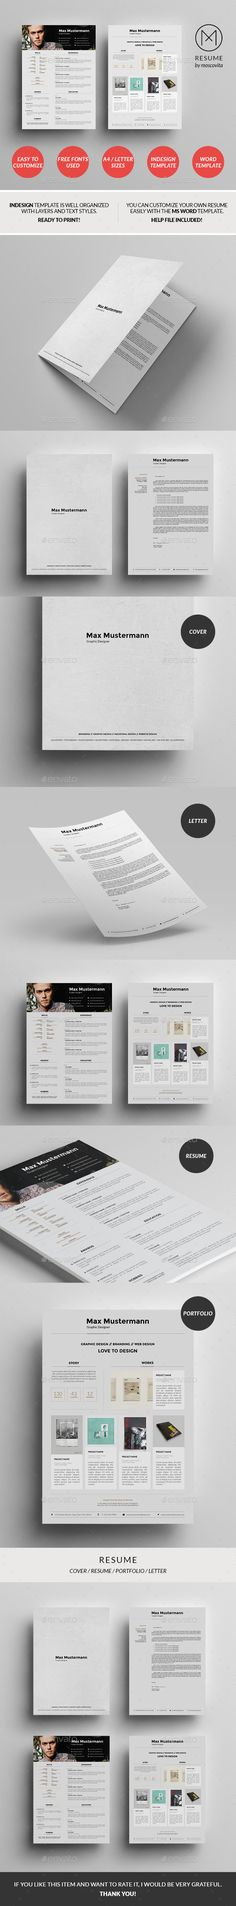 Indesign Cv Resume Inspiration Minimal Color Amir Hadzic  Dg  Cv